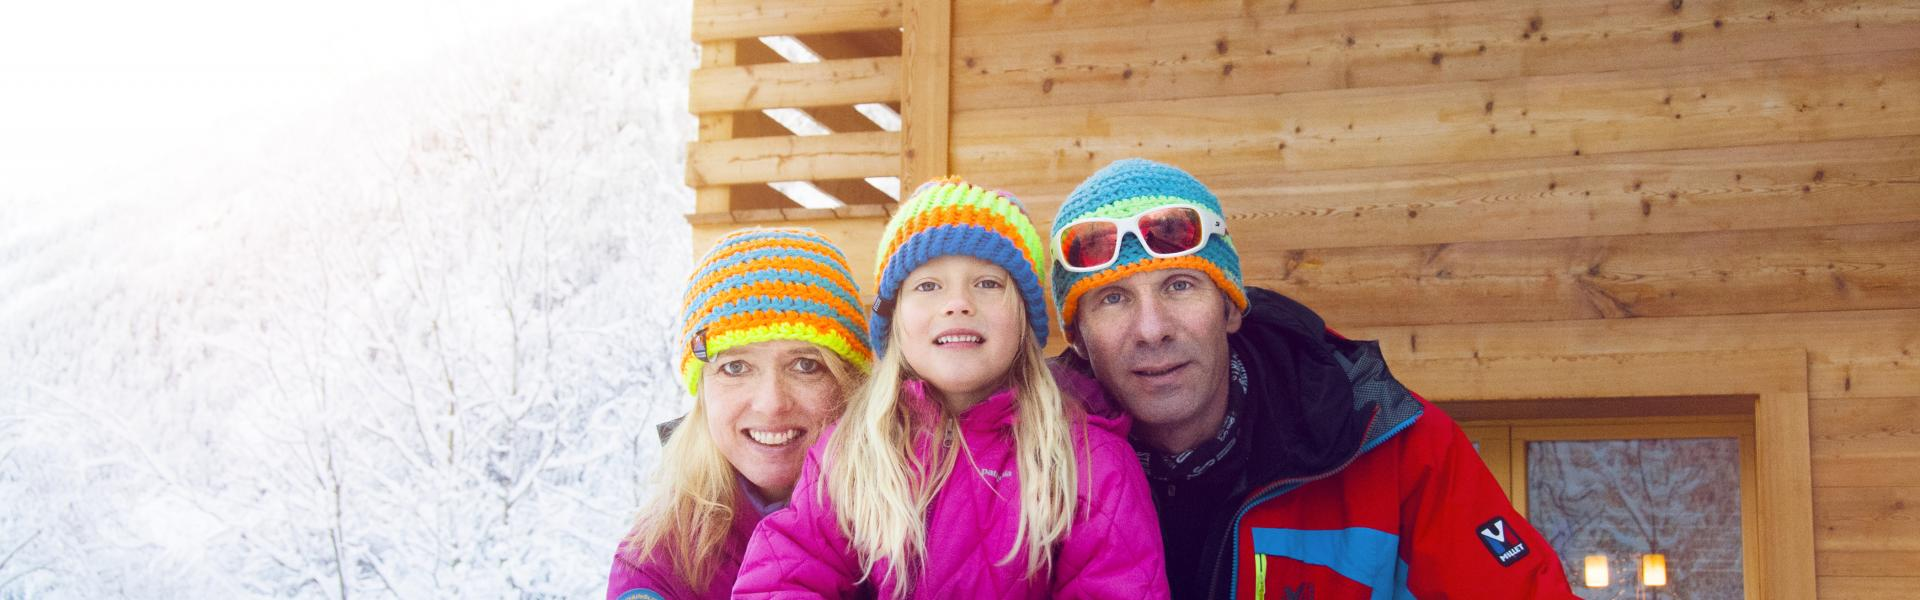 Family on a terrace in winter, Valais